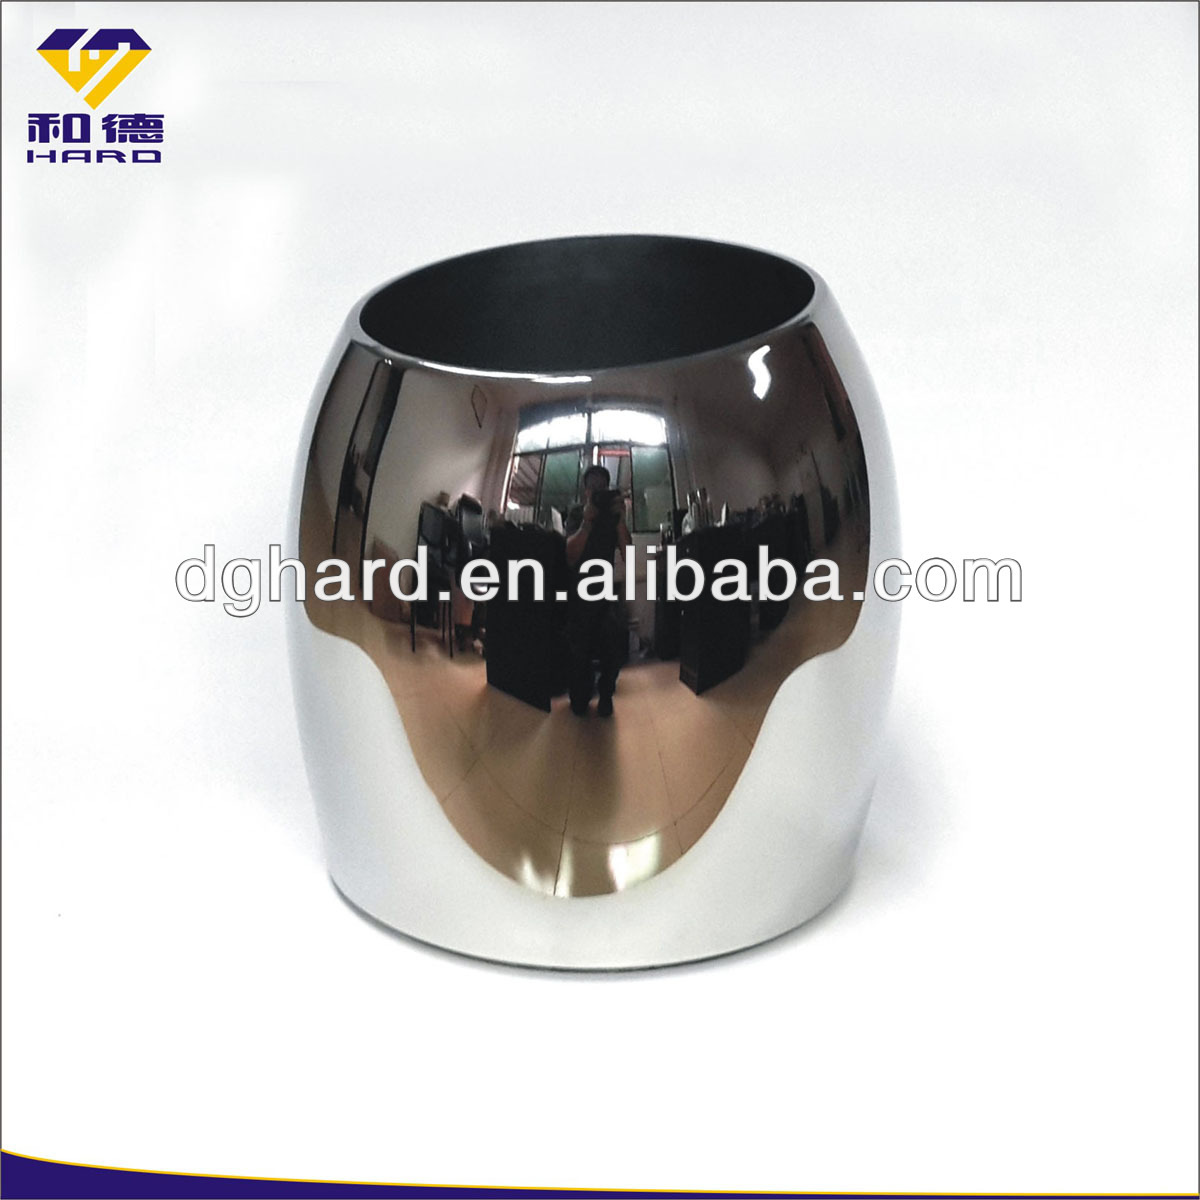 OEM/ODM mirror polish stainless steel juicer parts